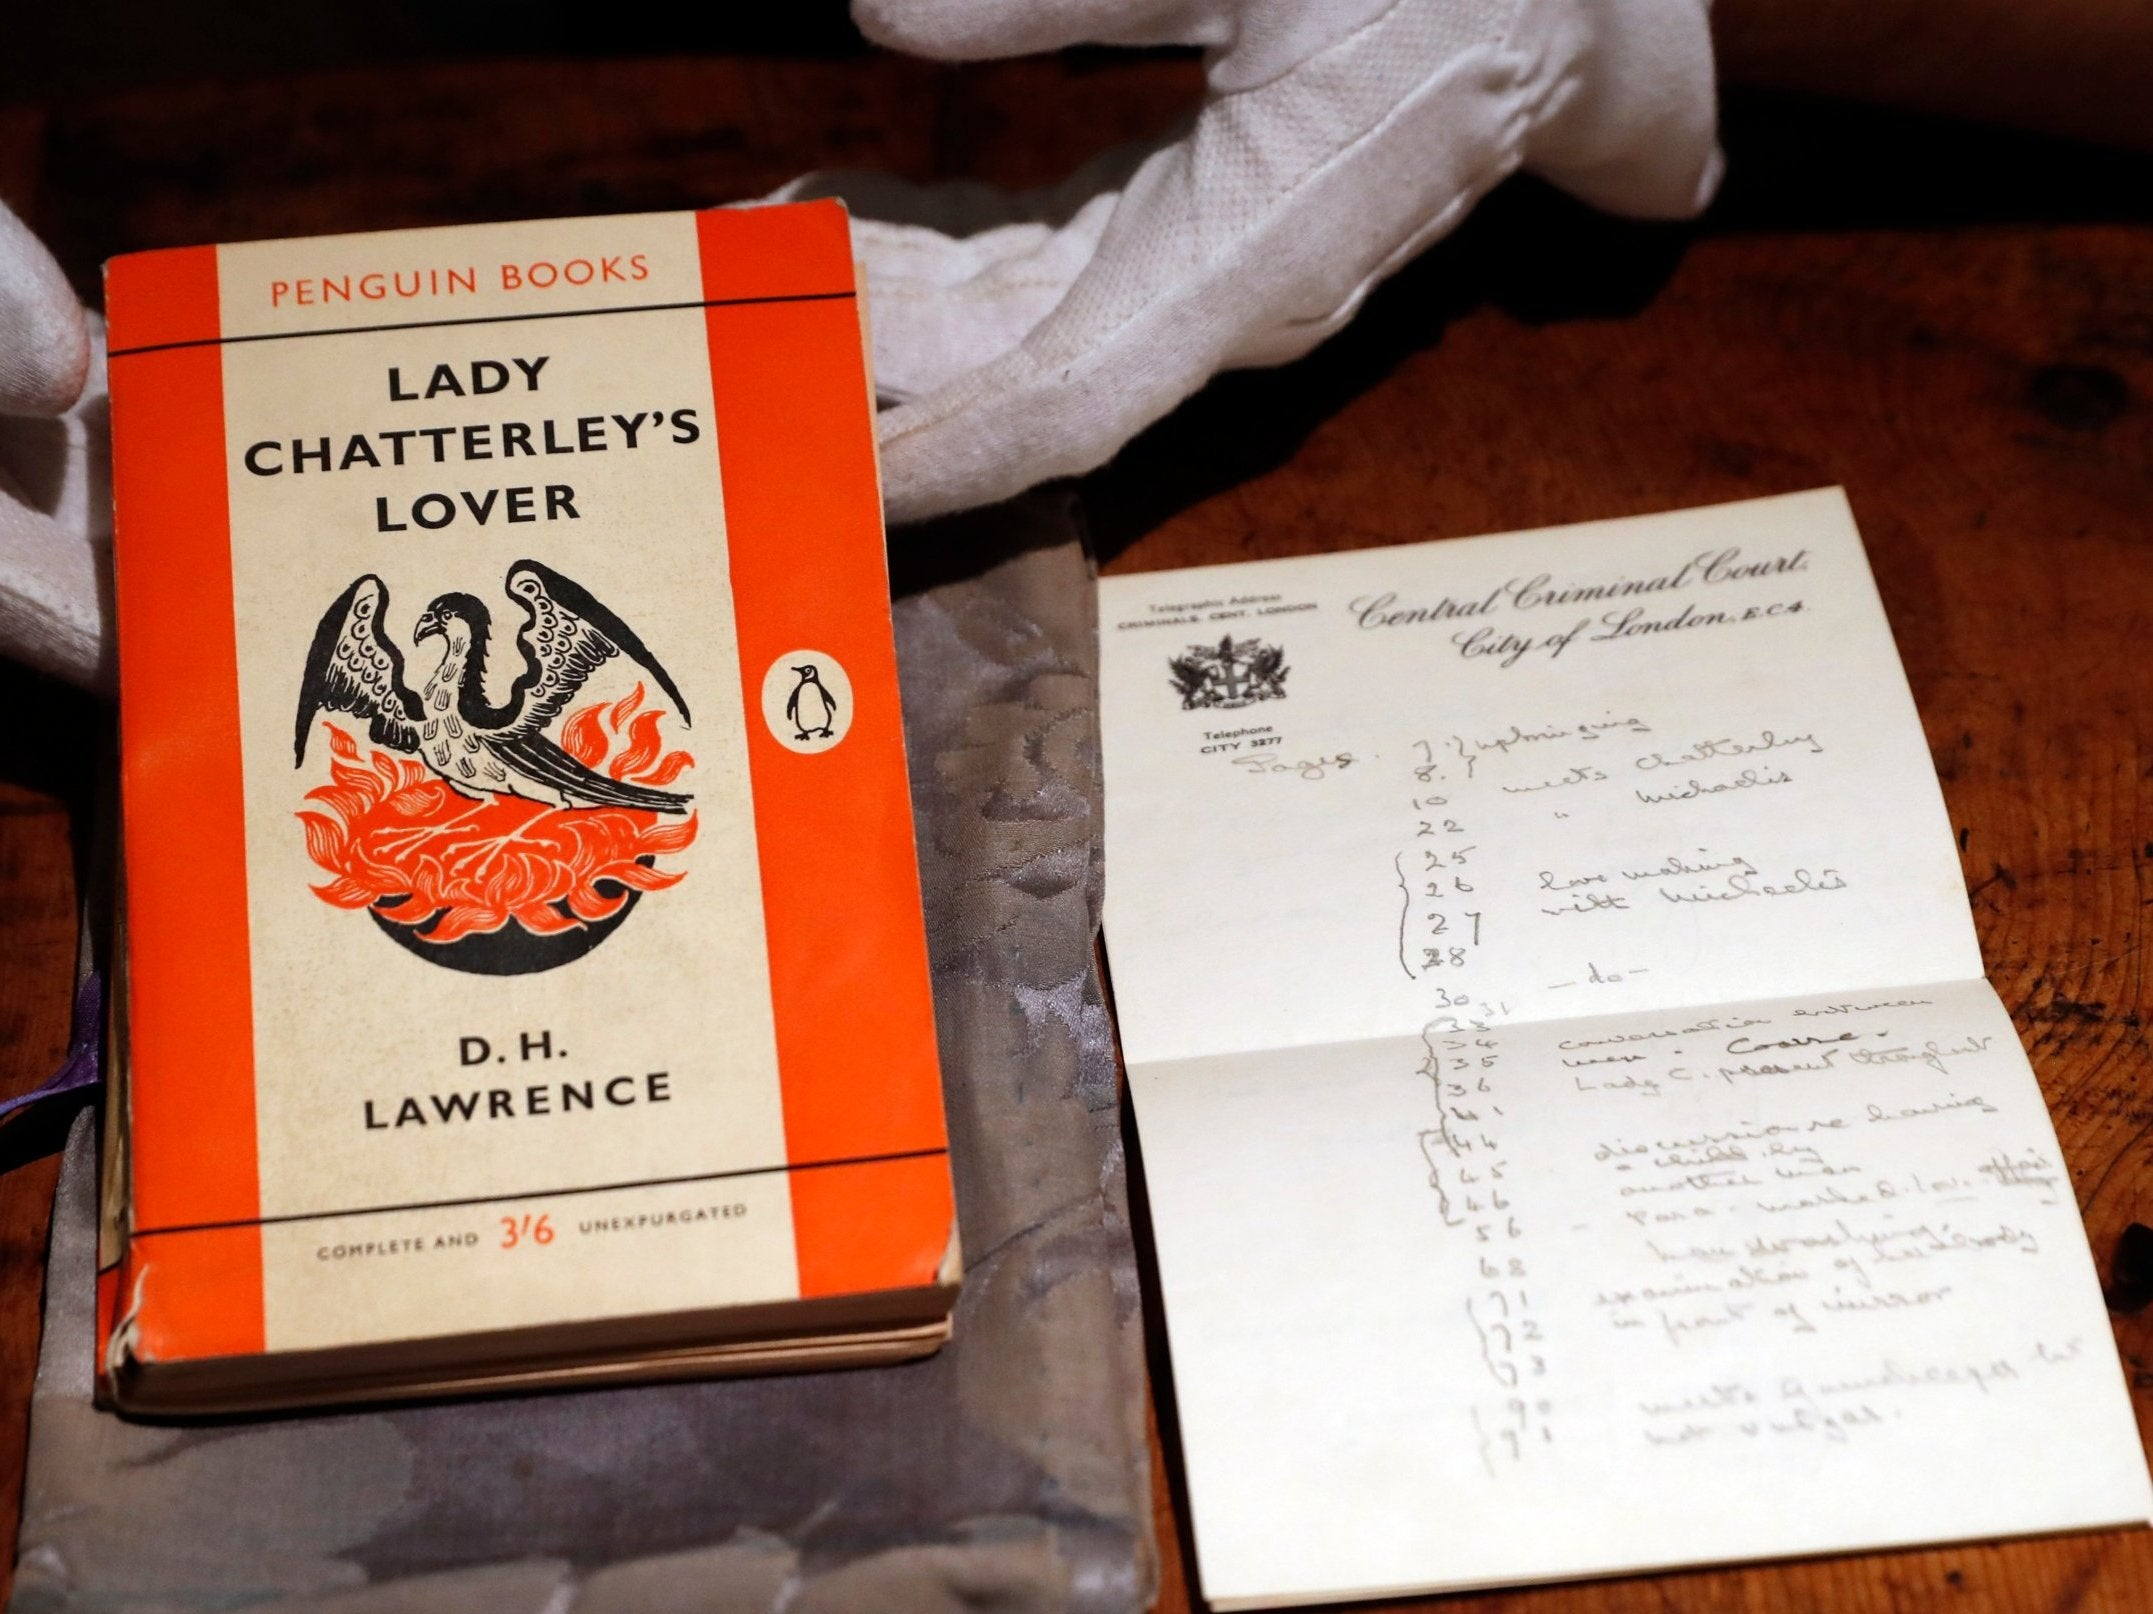 Lady Chatterley's Lover hailed as 'sacred text' in attempt to prevent rare copy leaving UK